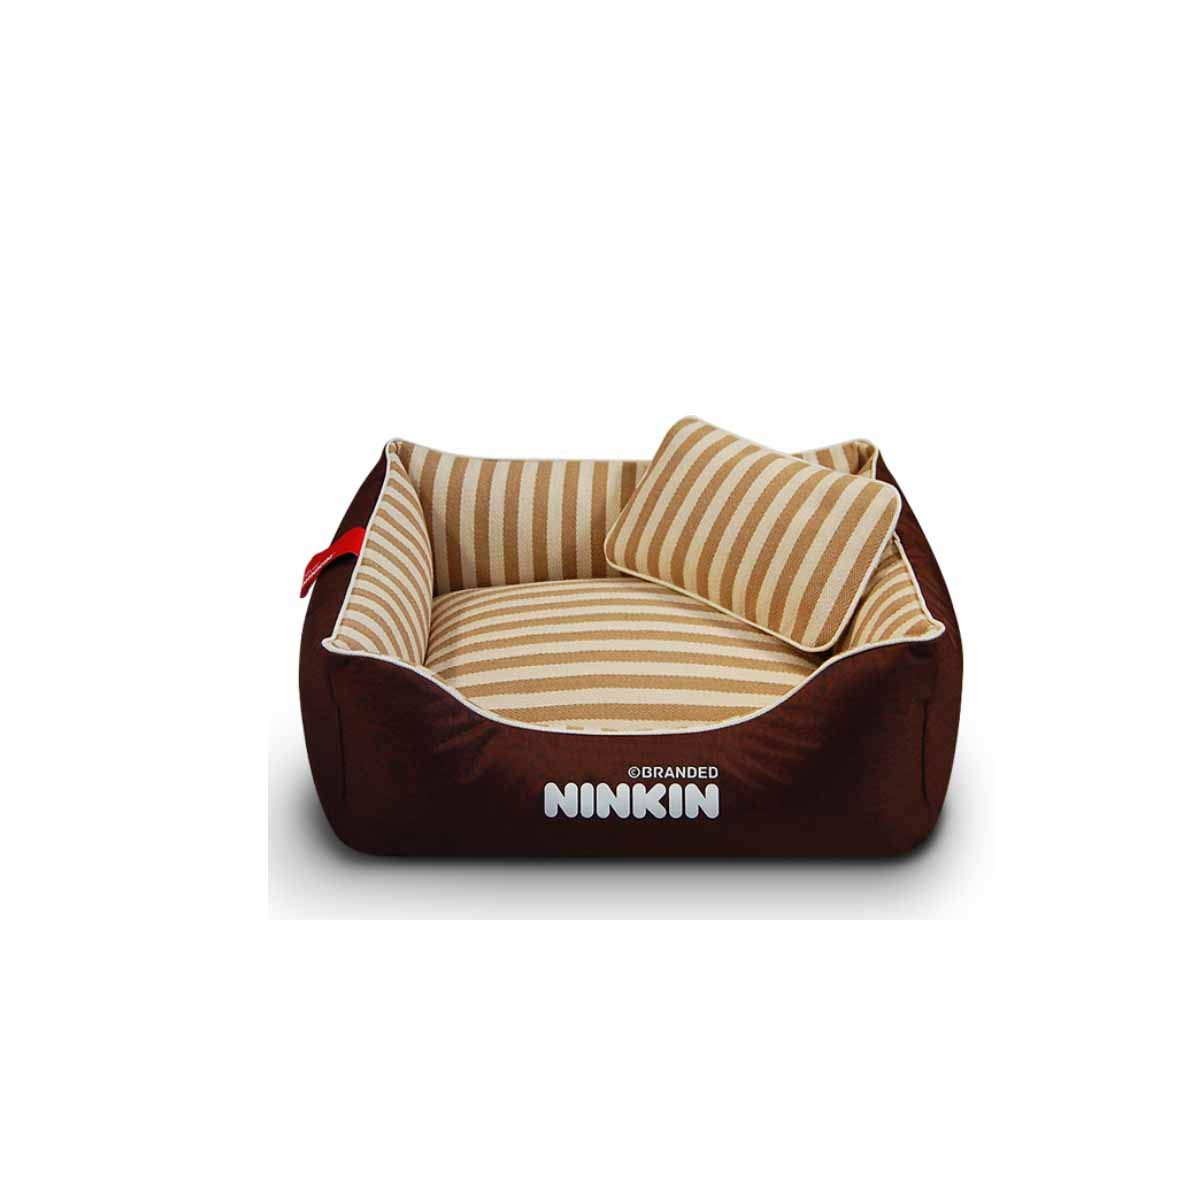 Kennel, Cat Kennel, Pet Nest, Fully Removable and Washable Teddy golden Maosamo Large and Medium-Sized Dogs, Pet Beds, Kennels, Large Dogs, Cat Litter (color   Brown, Size   XL)